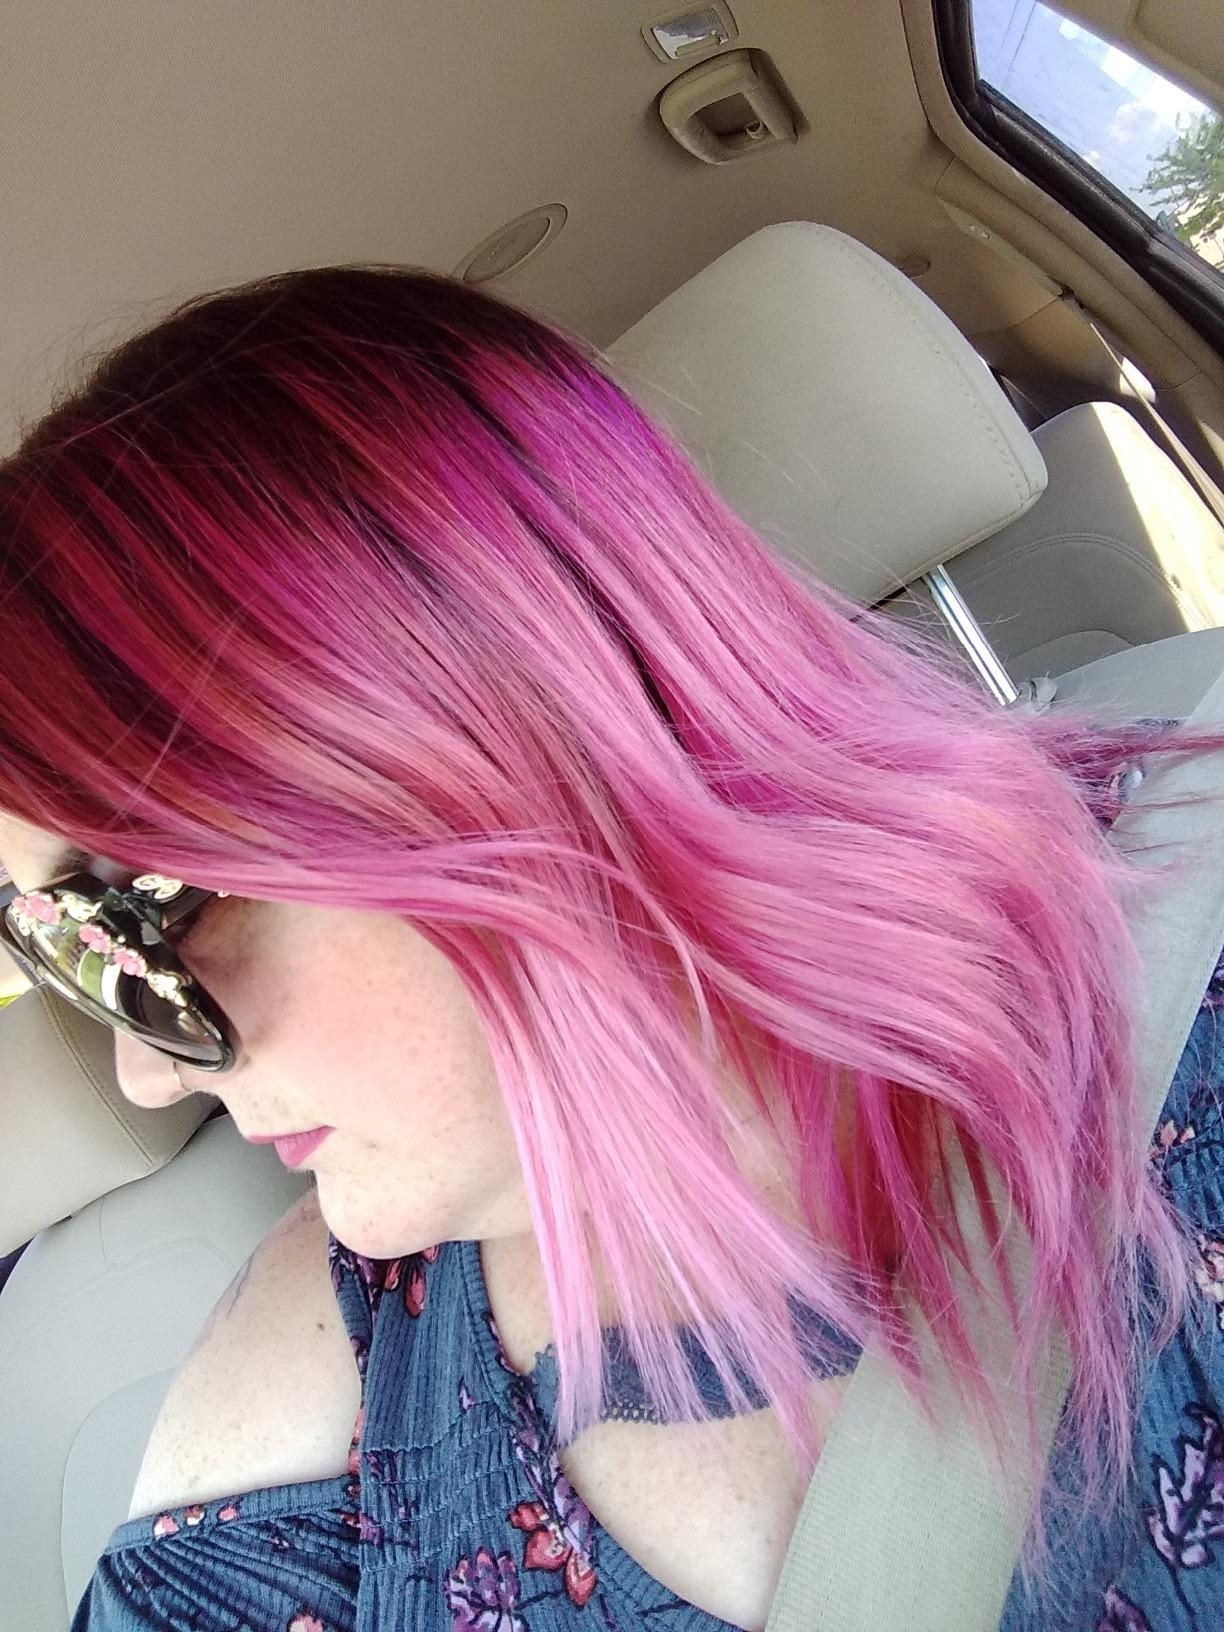 A reviewer's bleached and dyed pink hair looking shiny